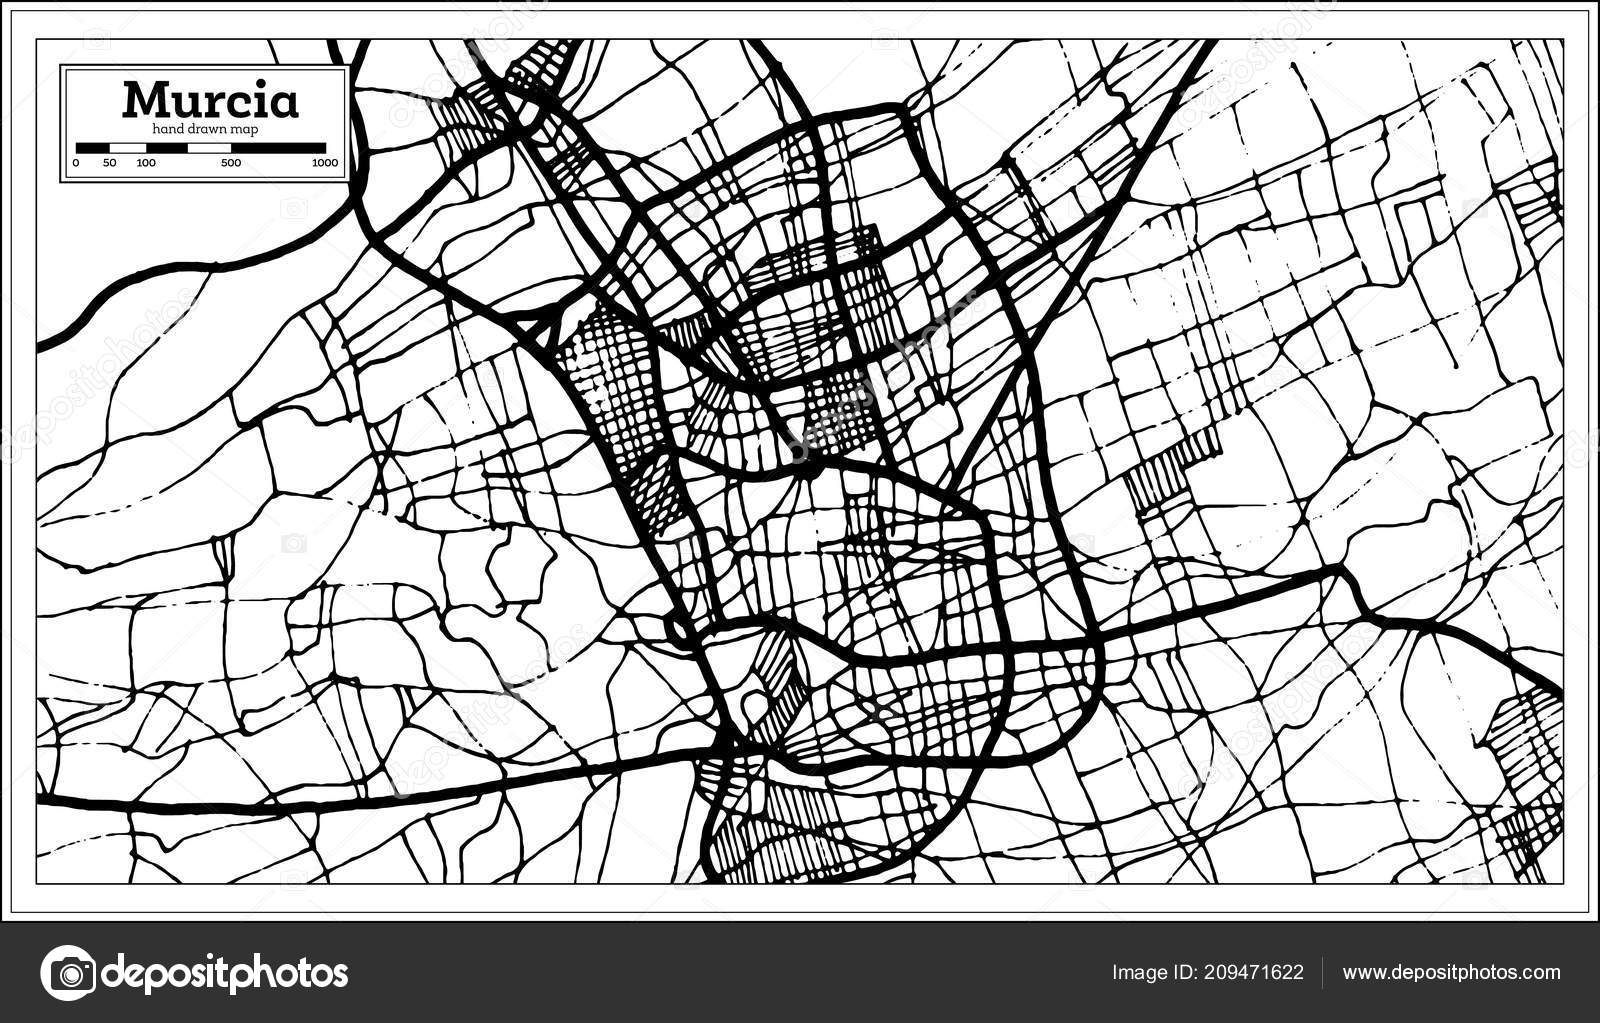 Murcia Map Of Spain.Murcia Spain City Map Retro Style Outline Map Vector Illustration